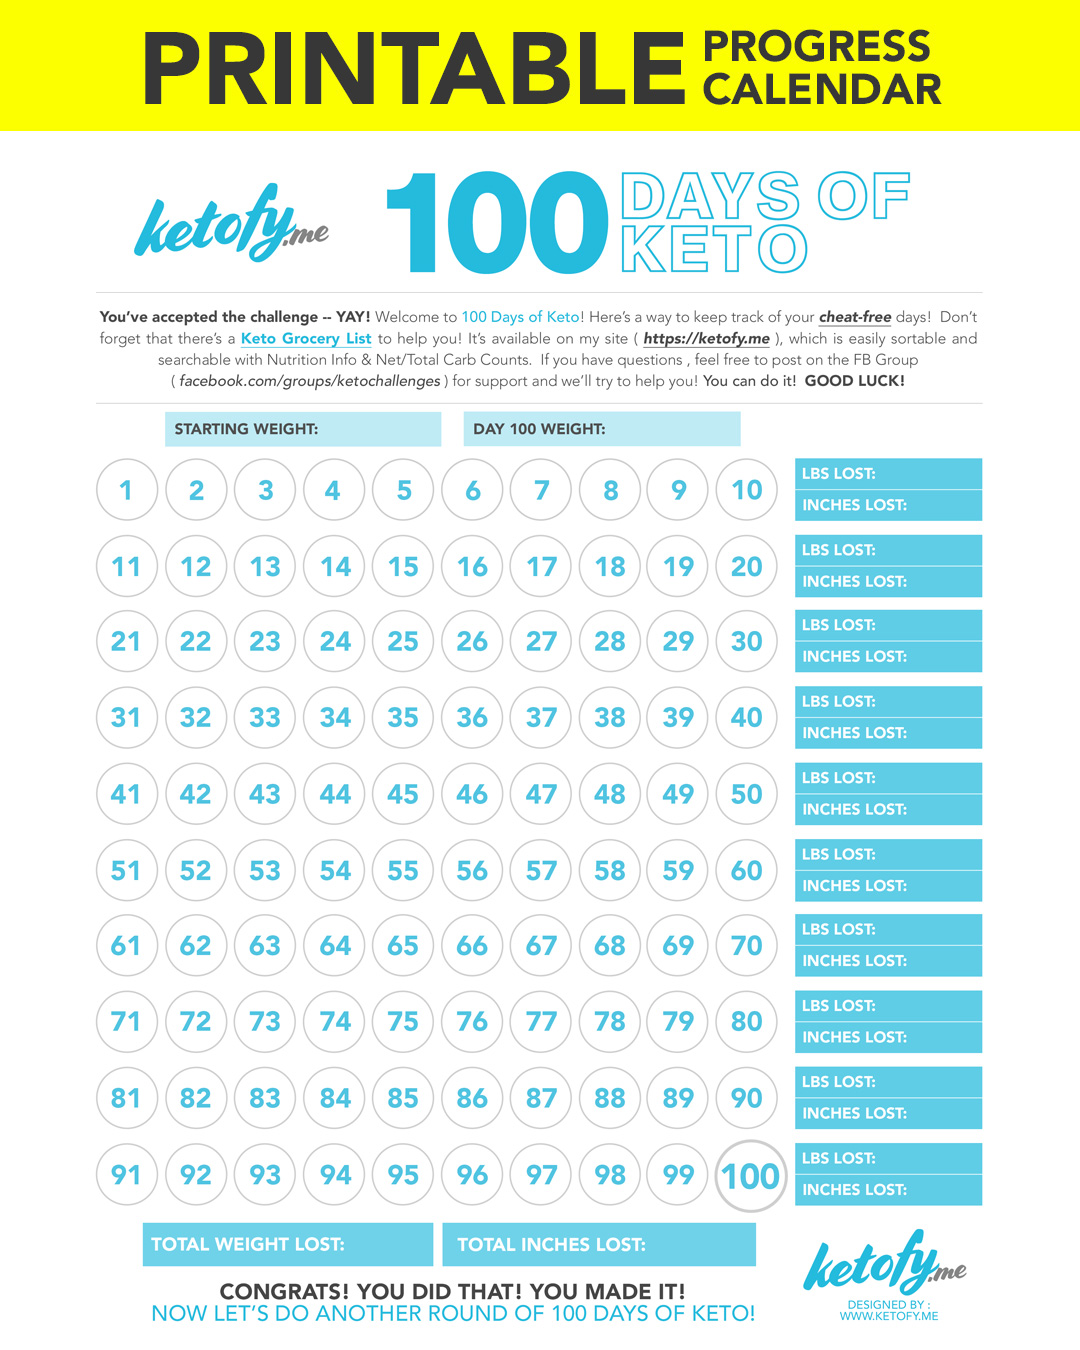 Ketofy.me 100 Days of Keto - Print - Printable Progress Calendar| www.ketofy.me | Keto Recipes | Keto Resources | Eating out on Keto | How to Start Keto Guide